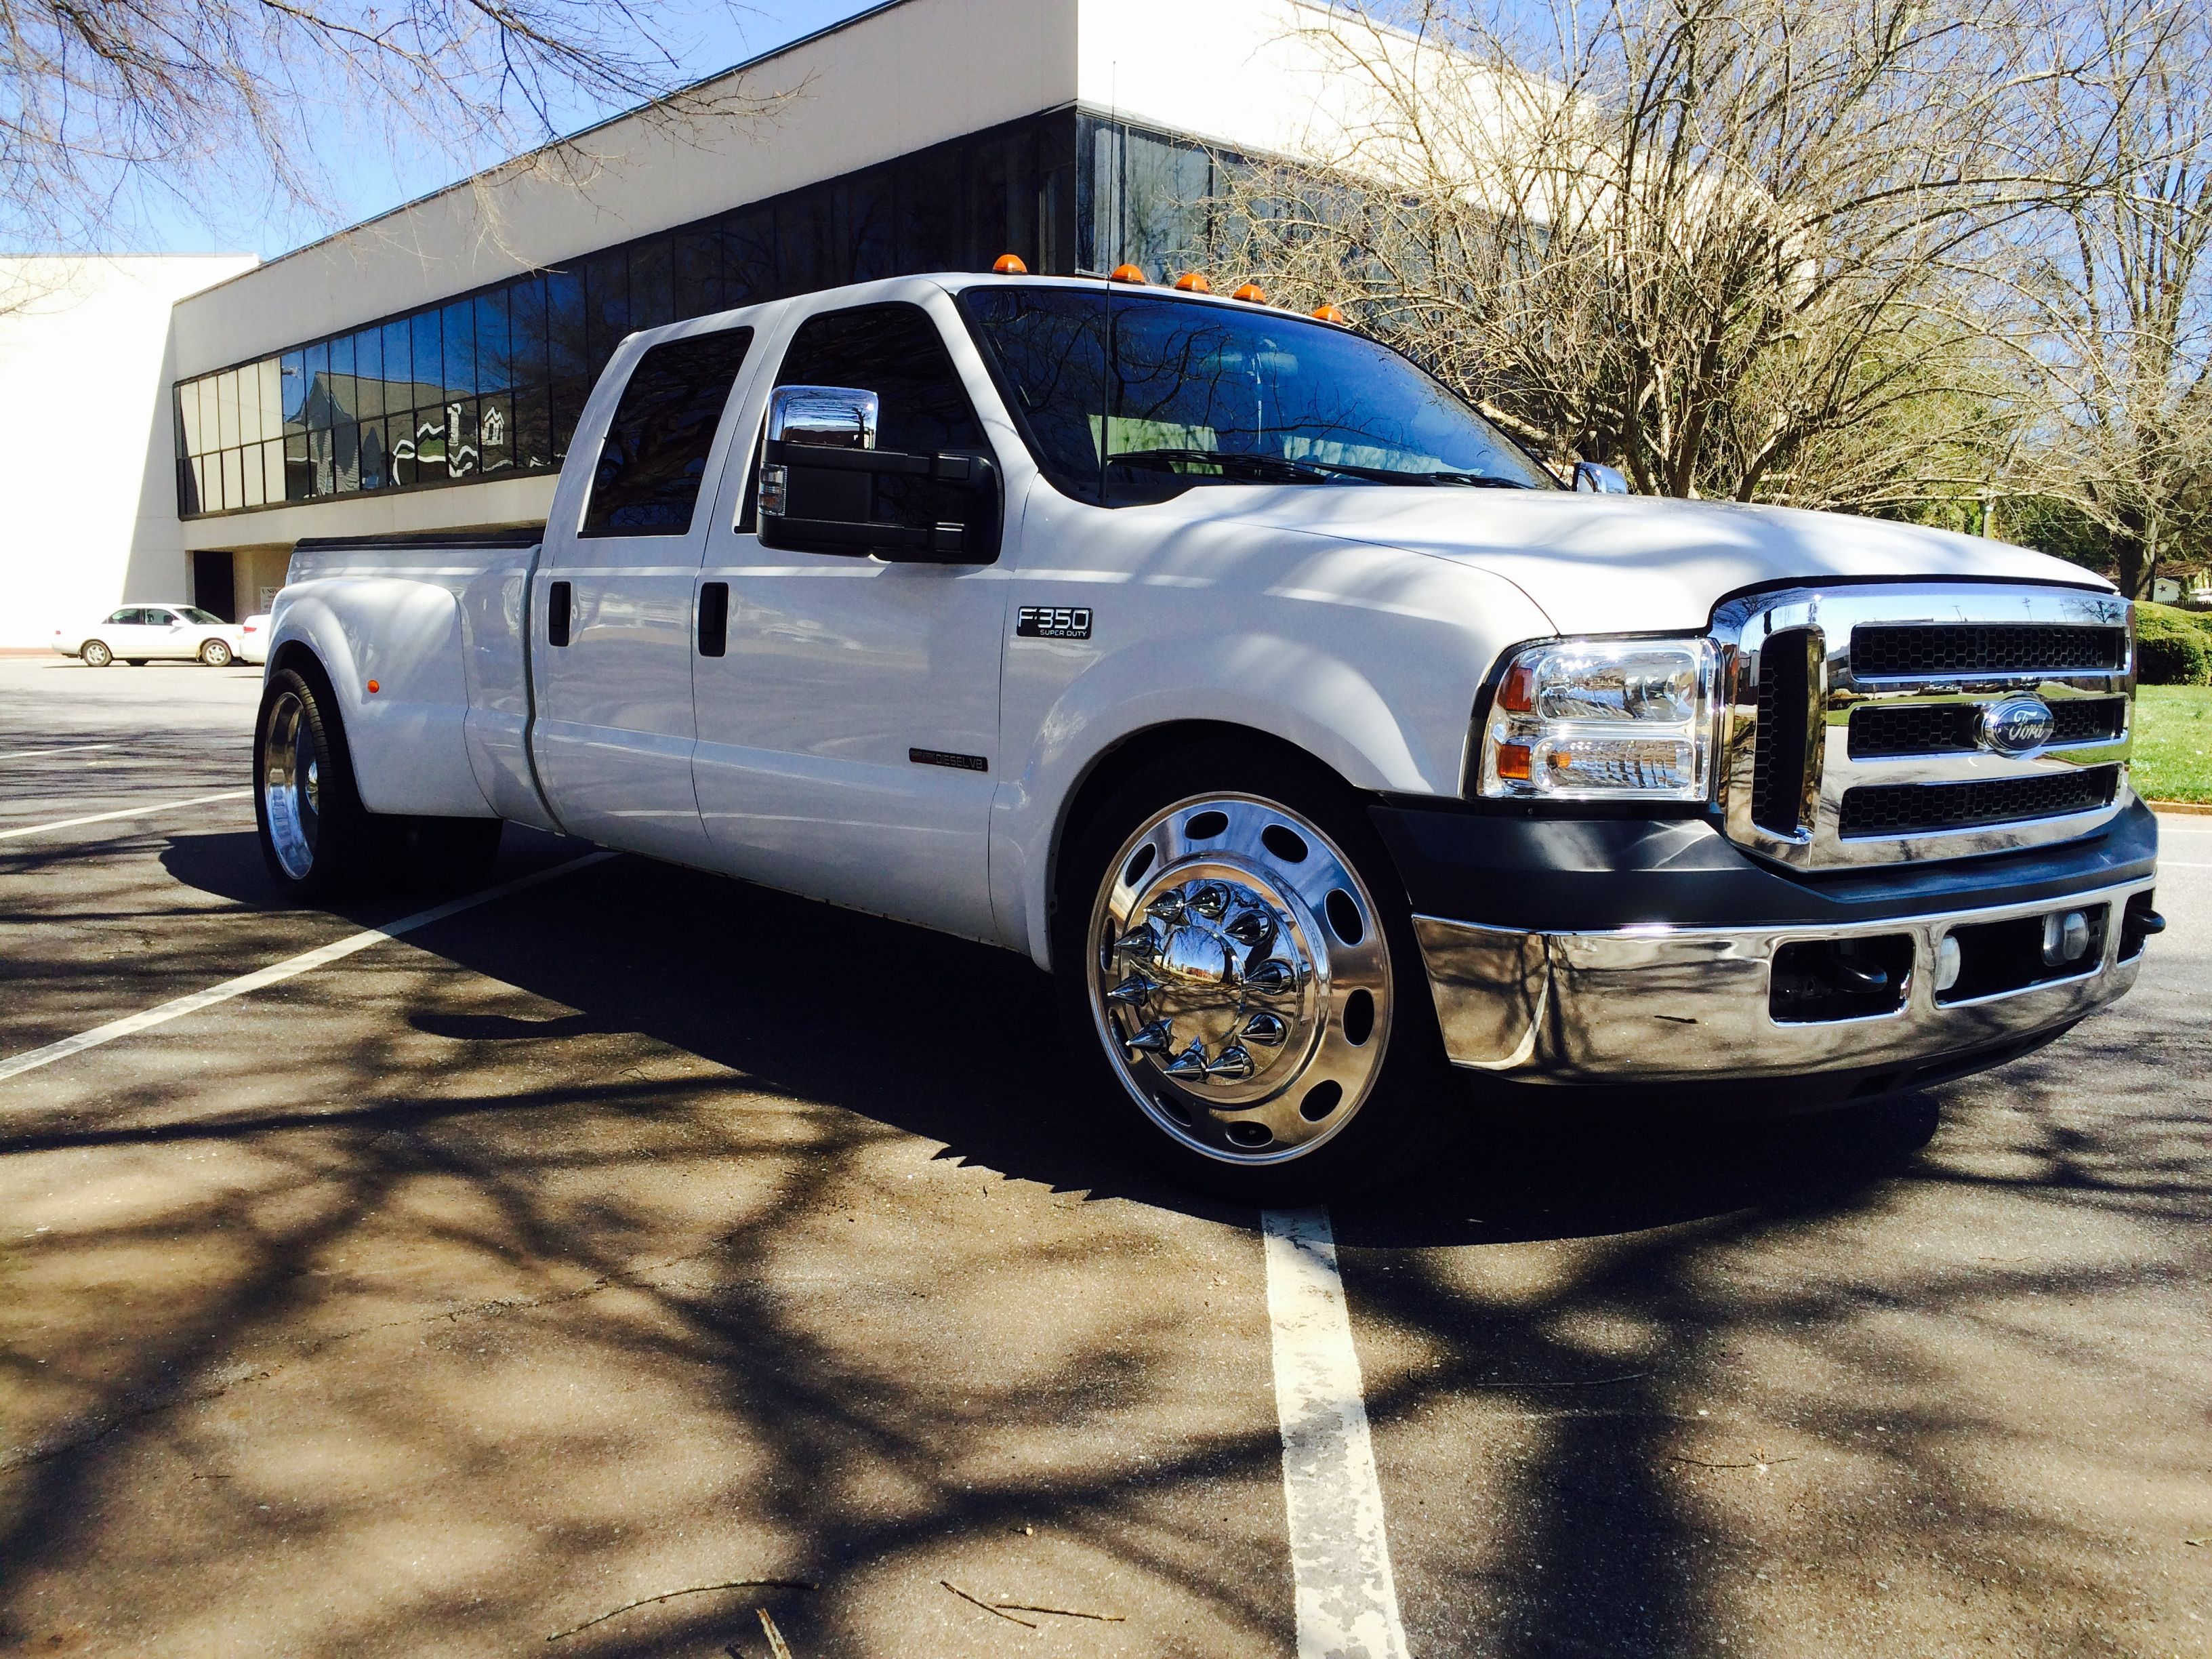 Pin by Chip Sims on F350 custom | Dually trucks, Ford f